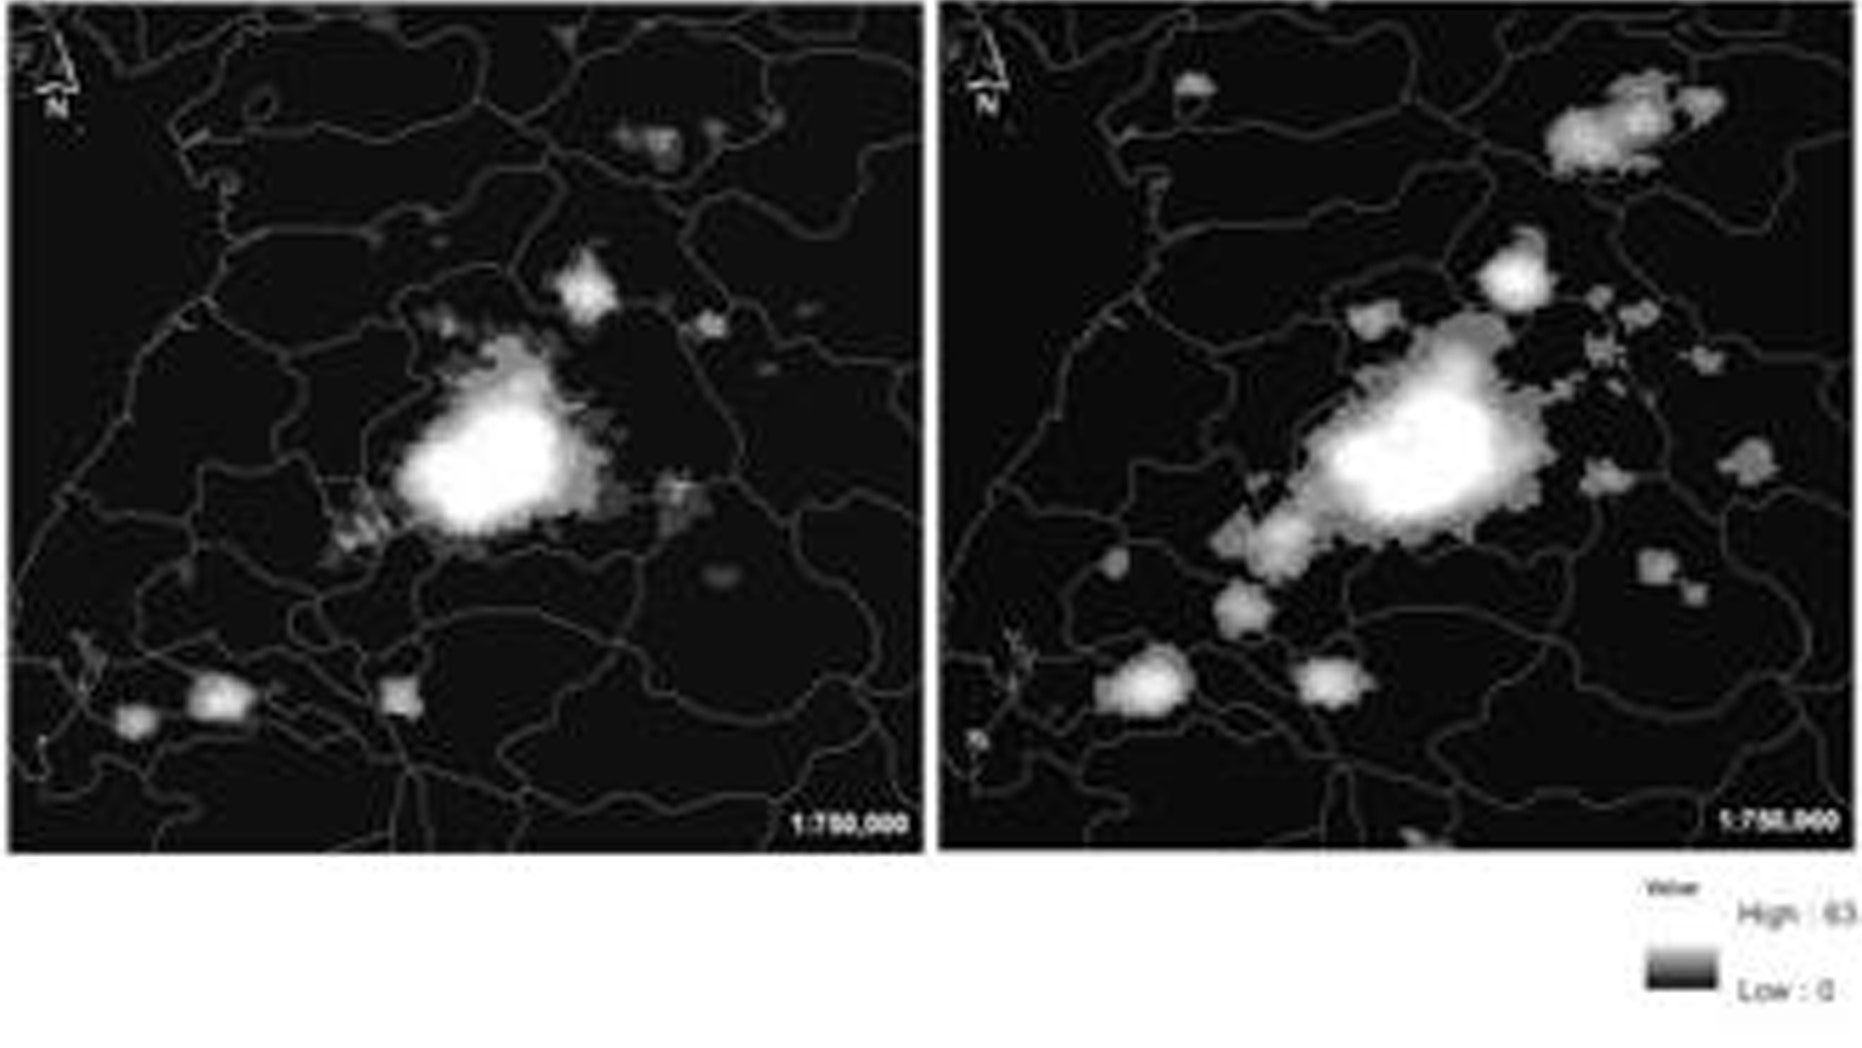 Satellite images show nighttime light in the North Korean capital city of Pyongyang and its surrounding areas in 2002 and 2012.